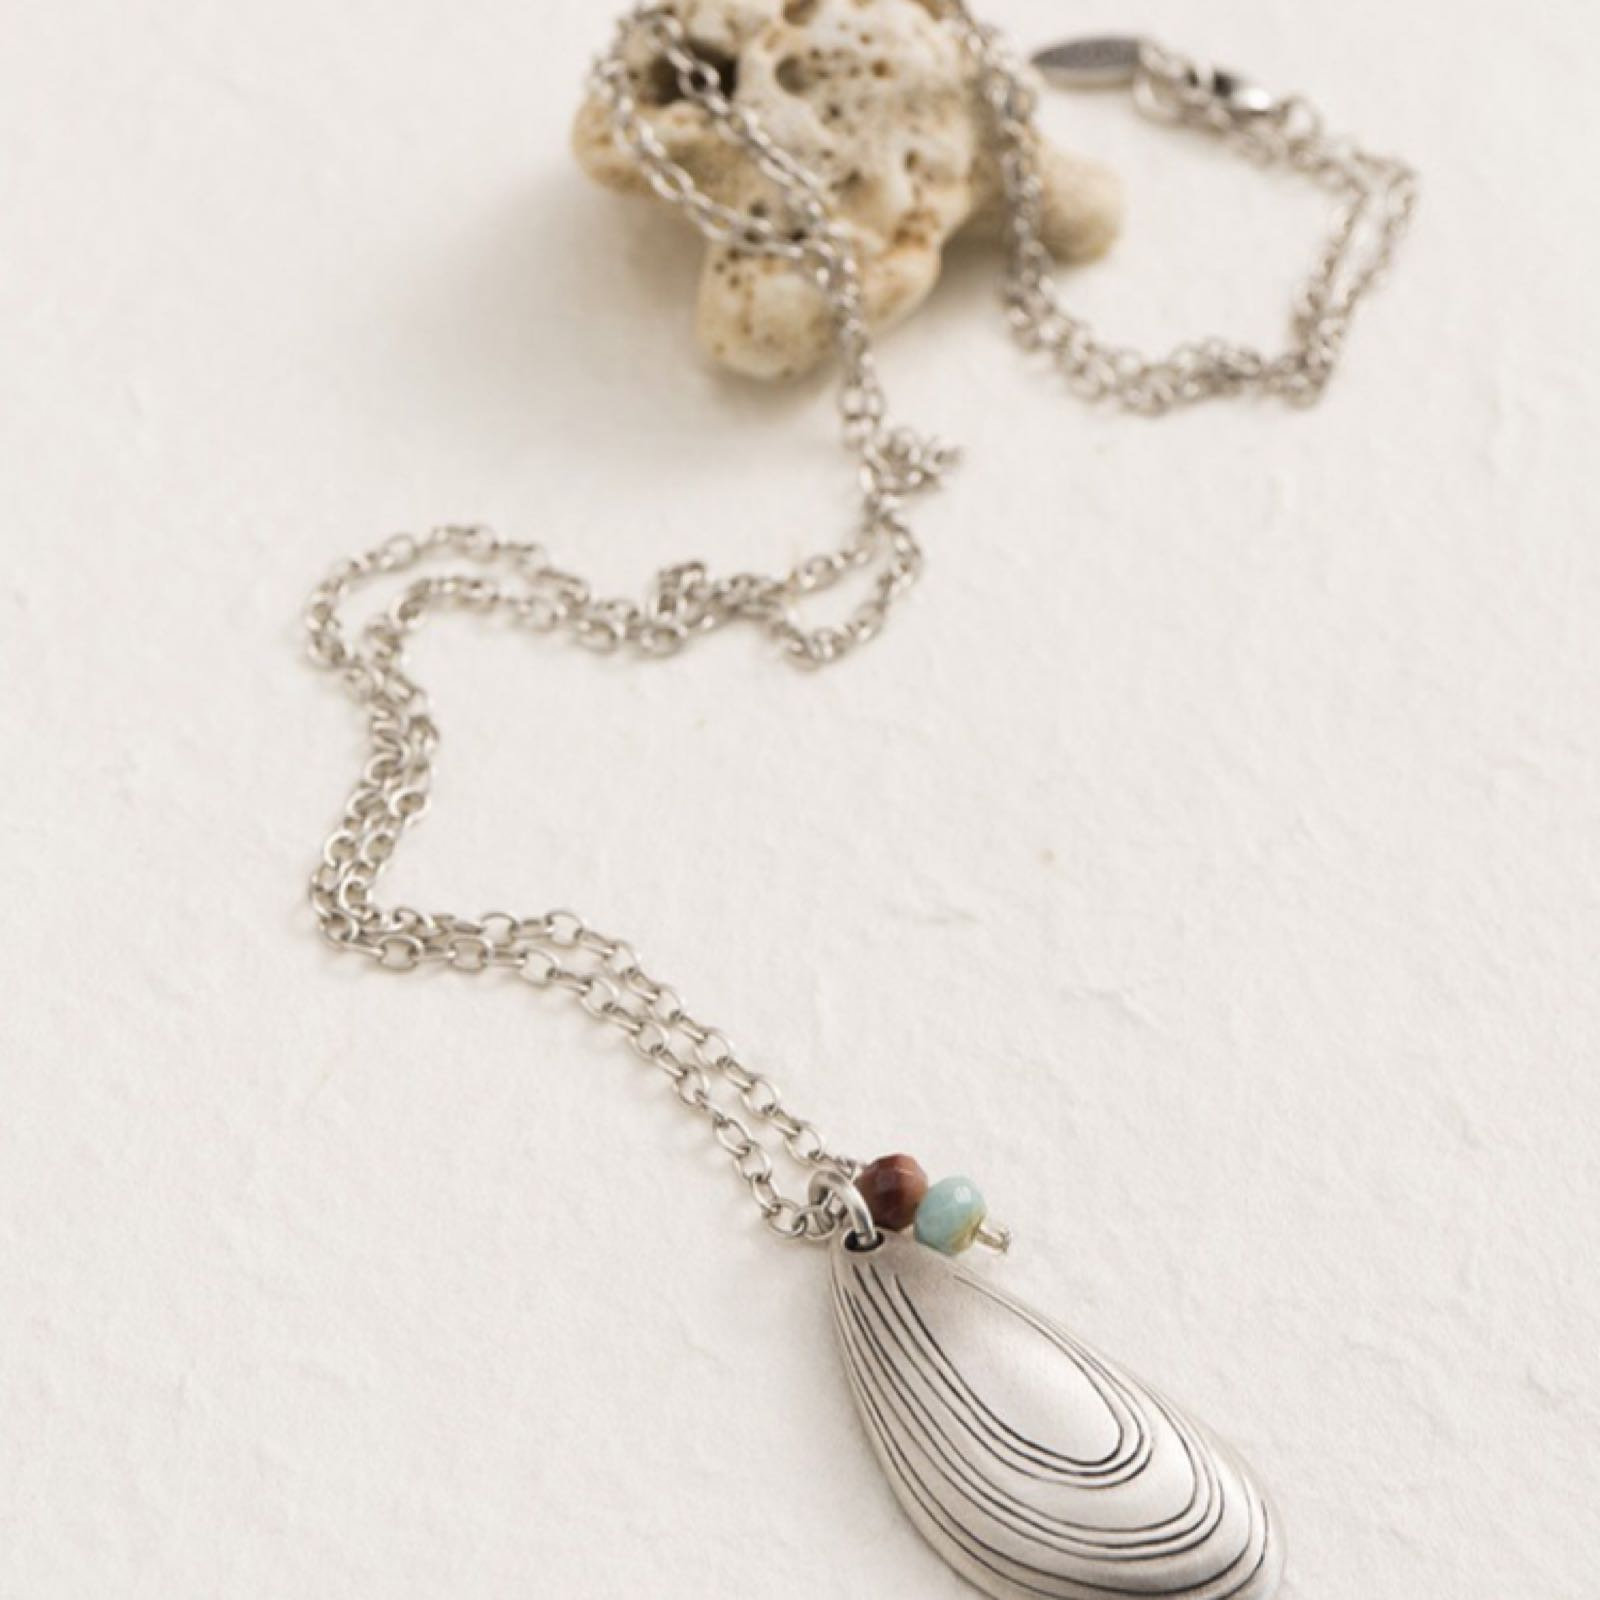 Danon long mussel shell necklace was £62.50